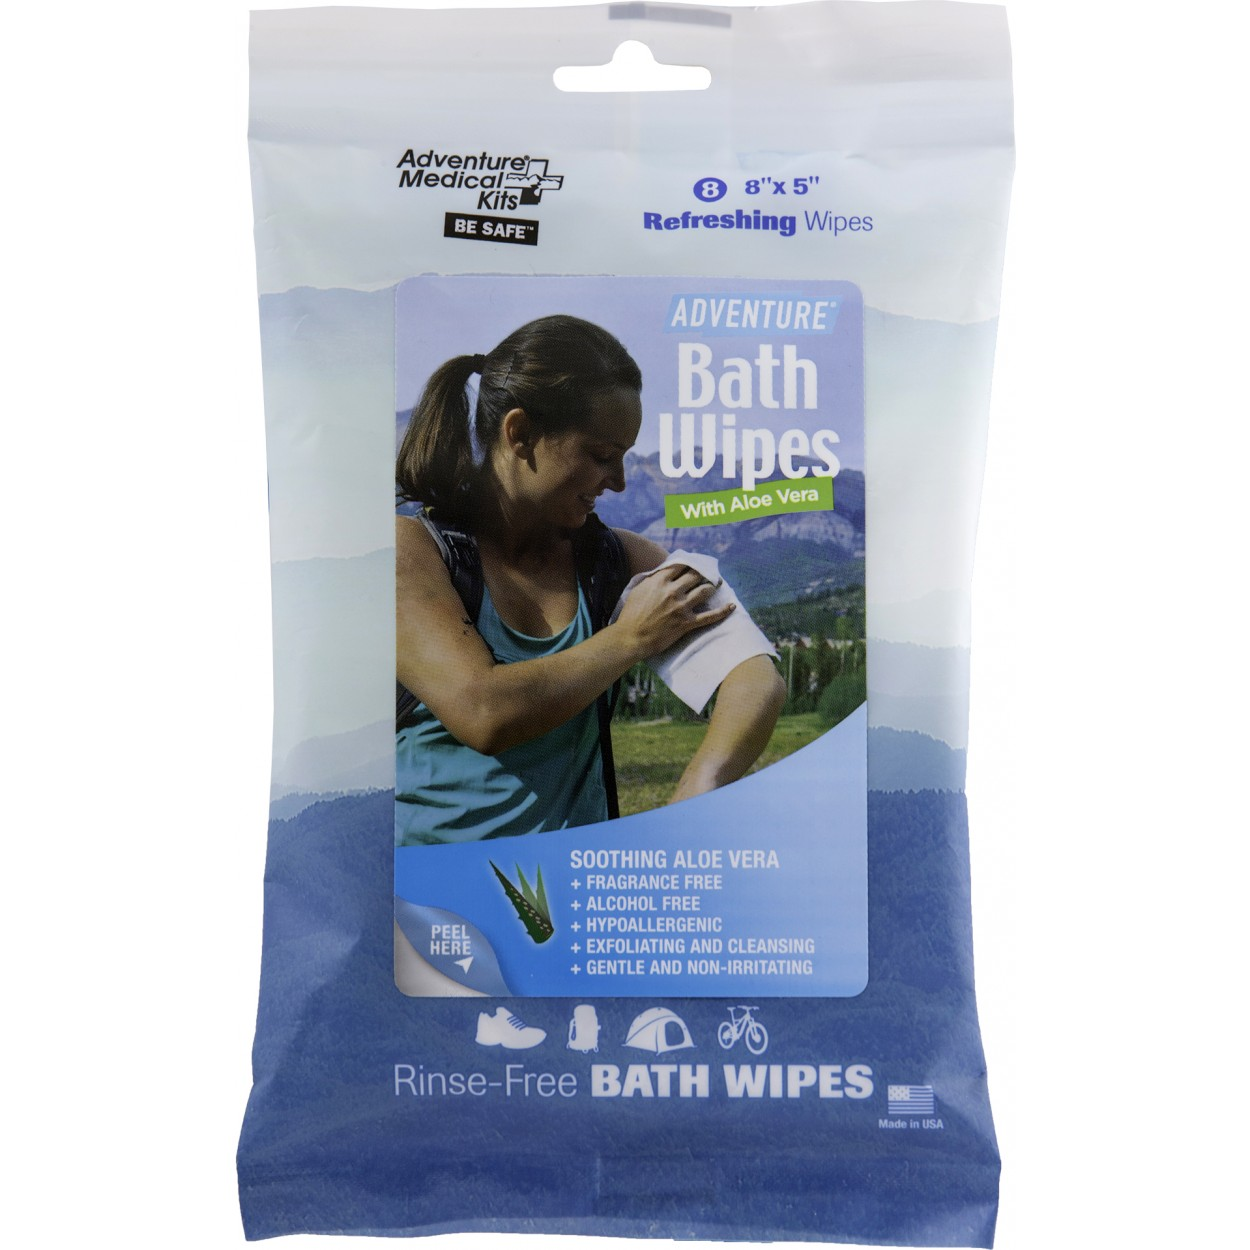 Adventure Bath Wipes 8 wipes Travel Size 8 in x 5 in